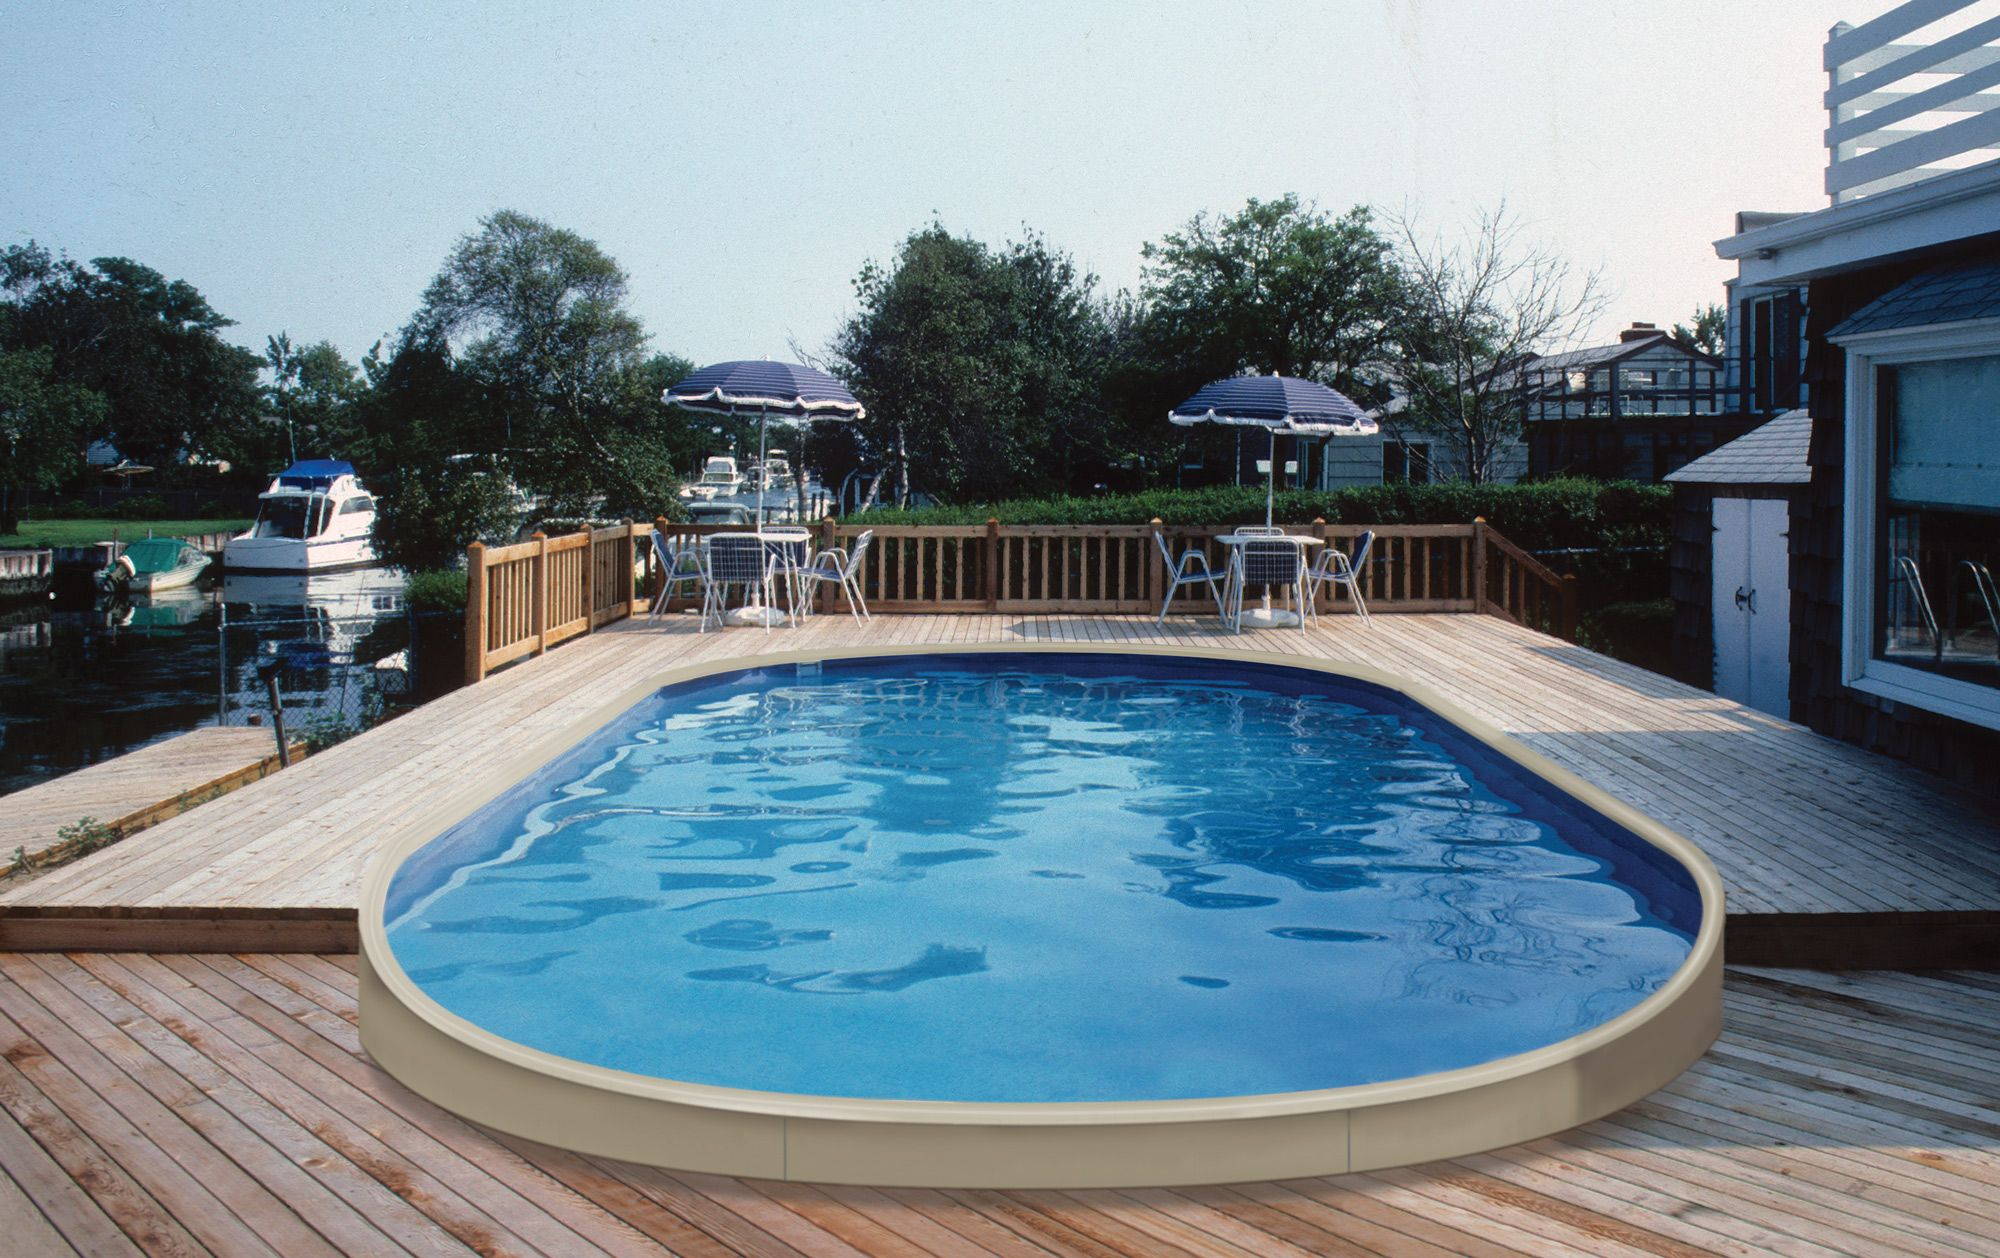 Buy and Oval Shaped Custom Above Ground Pool Online | Home ...